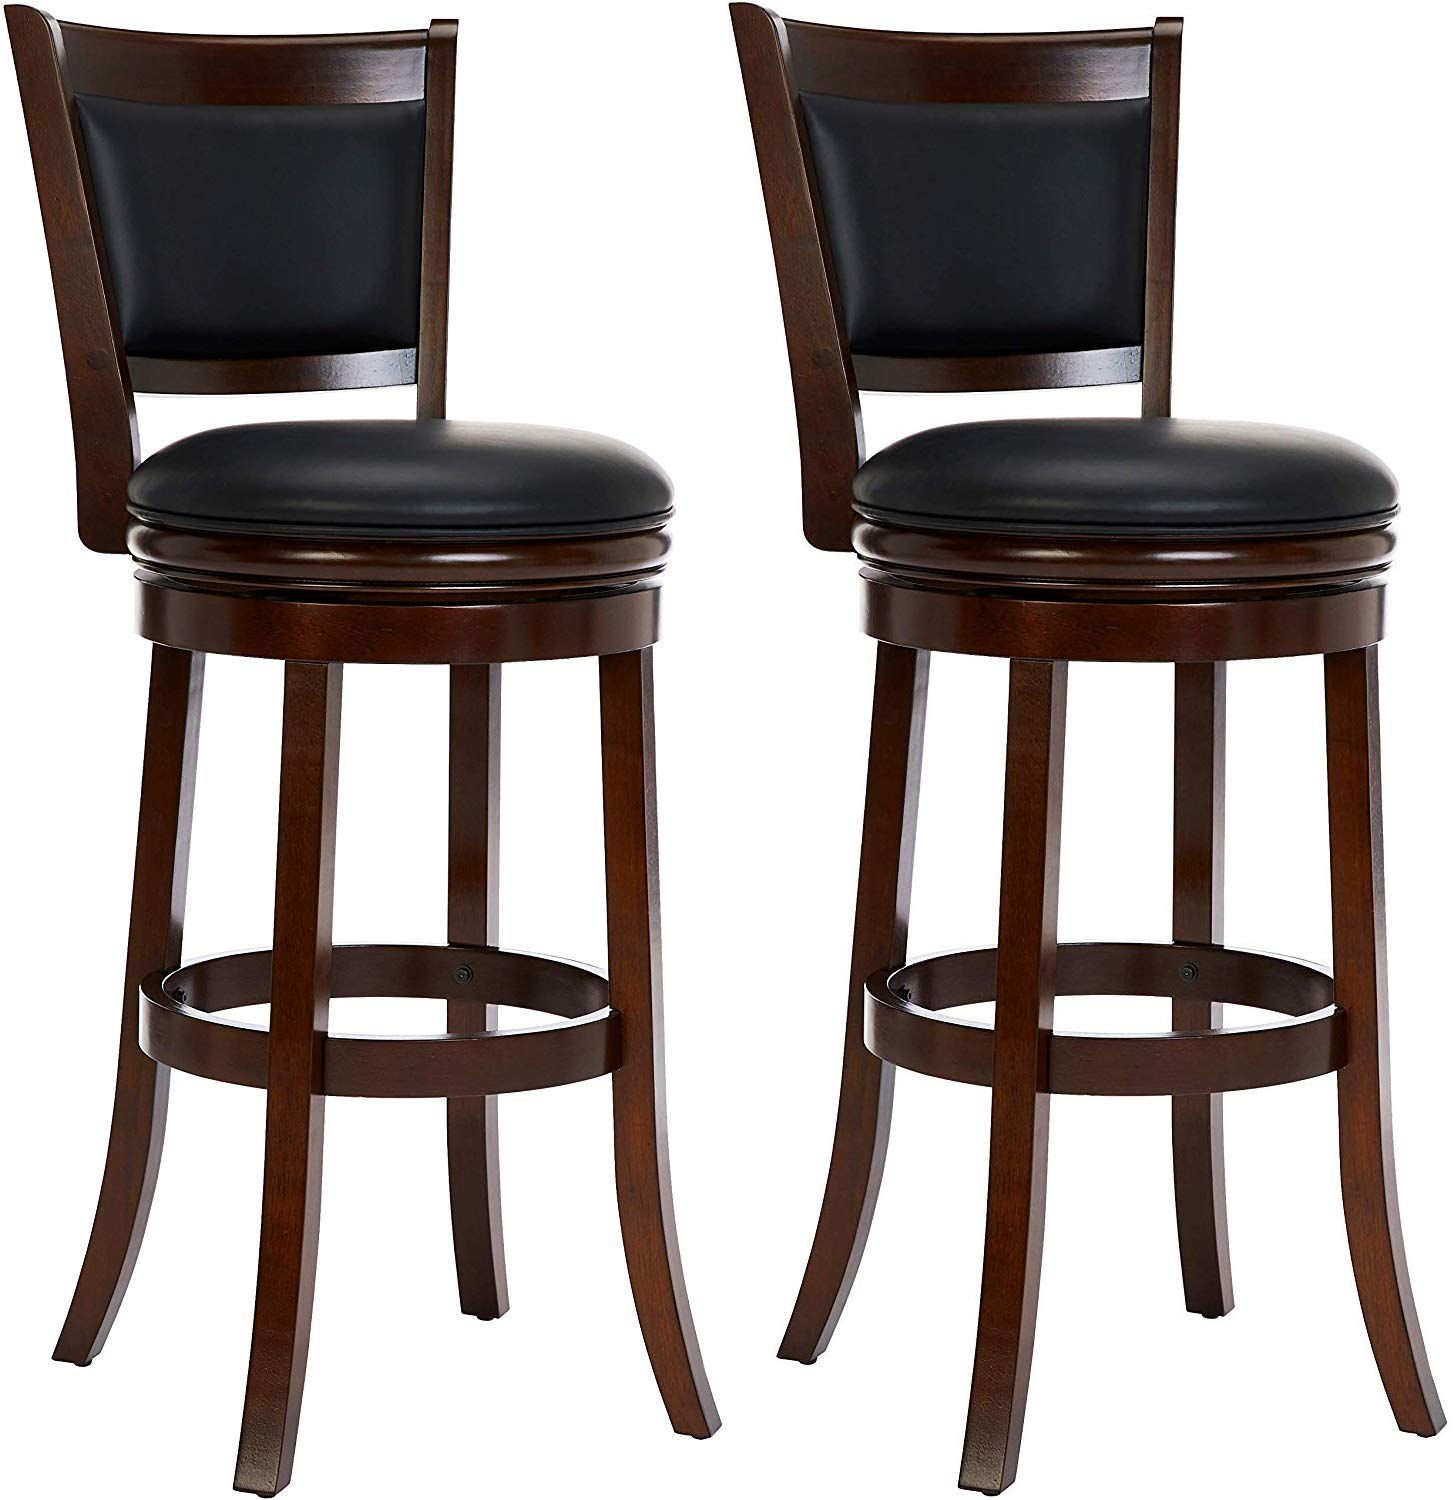 """Ball & Cast HSA-1102A-2S Bar Height, Pack of 2 Swivel Stool, 29"""", Cappuccino"""